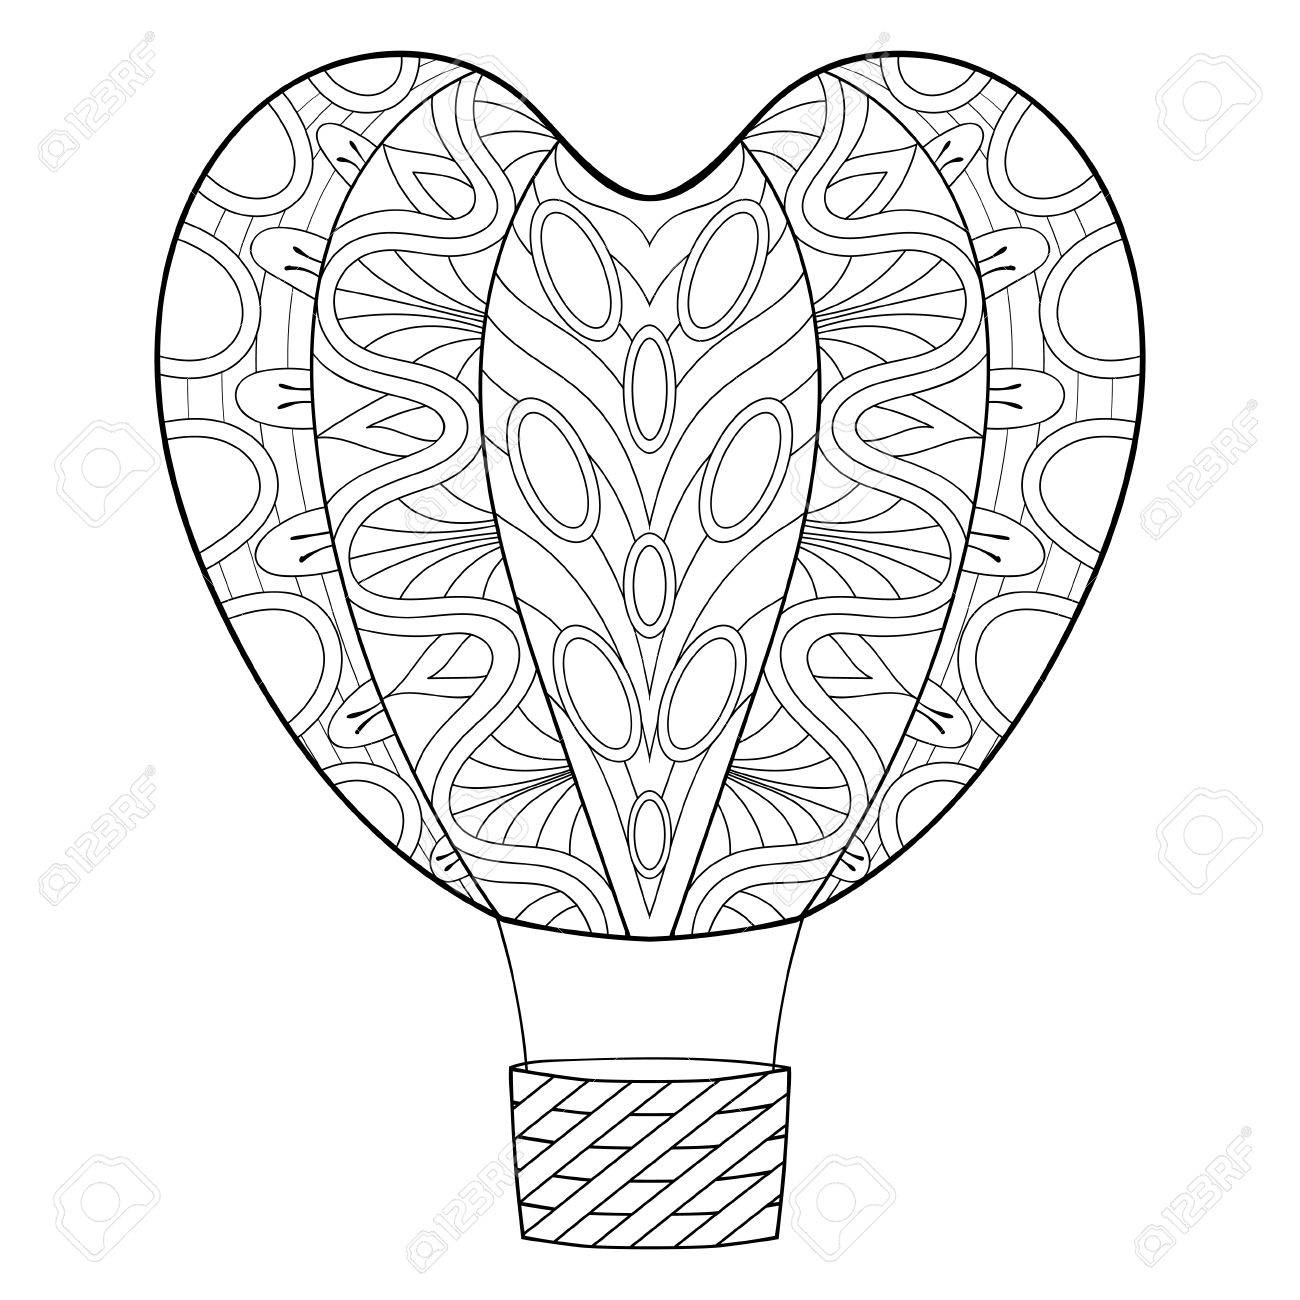 Hand Drawn Zentangle Balloon In Heart Shape For St Valentine